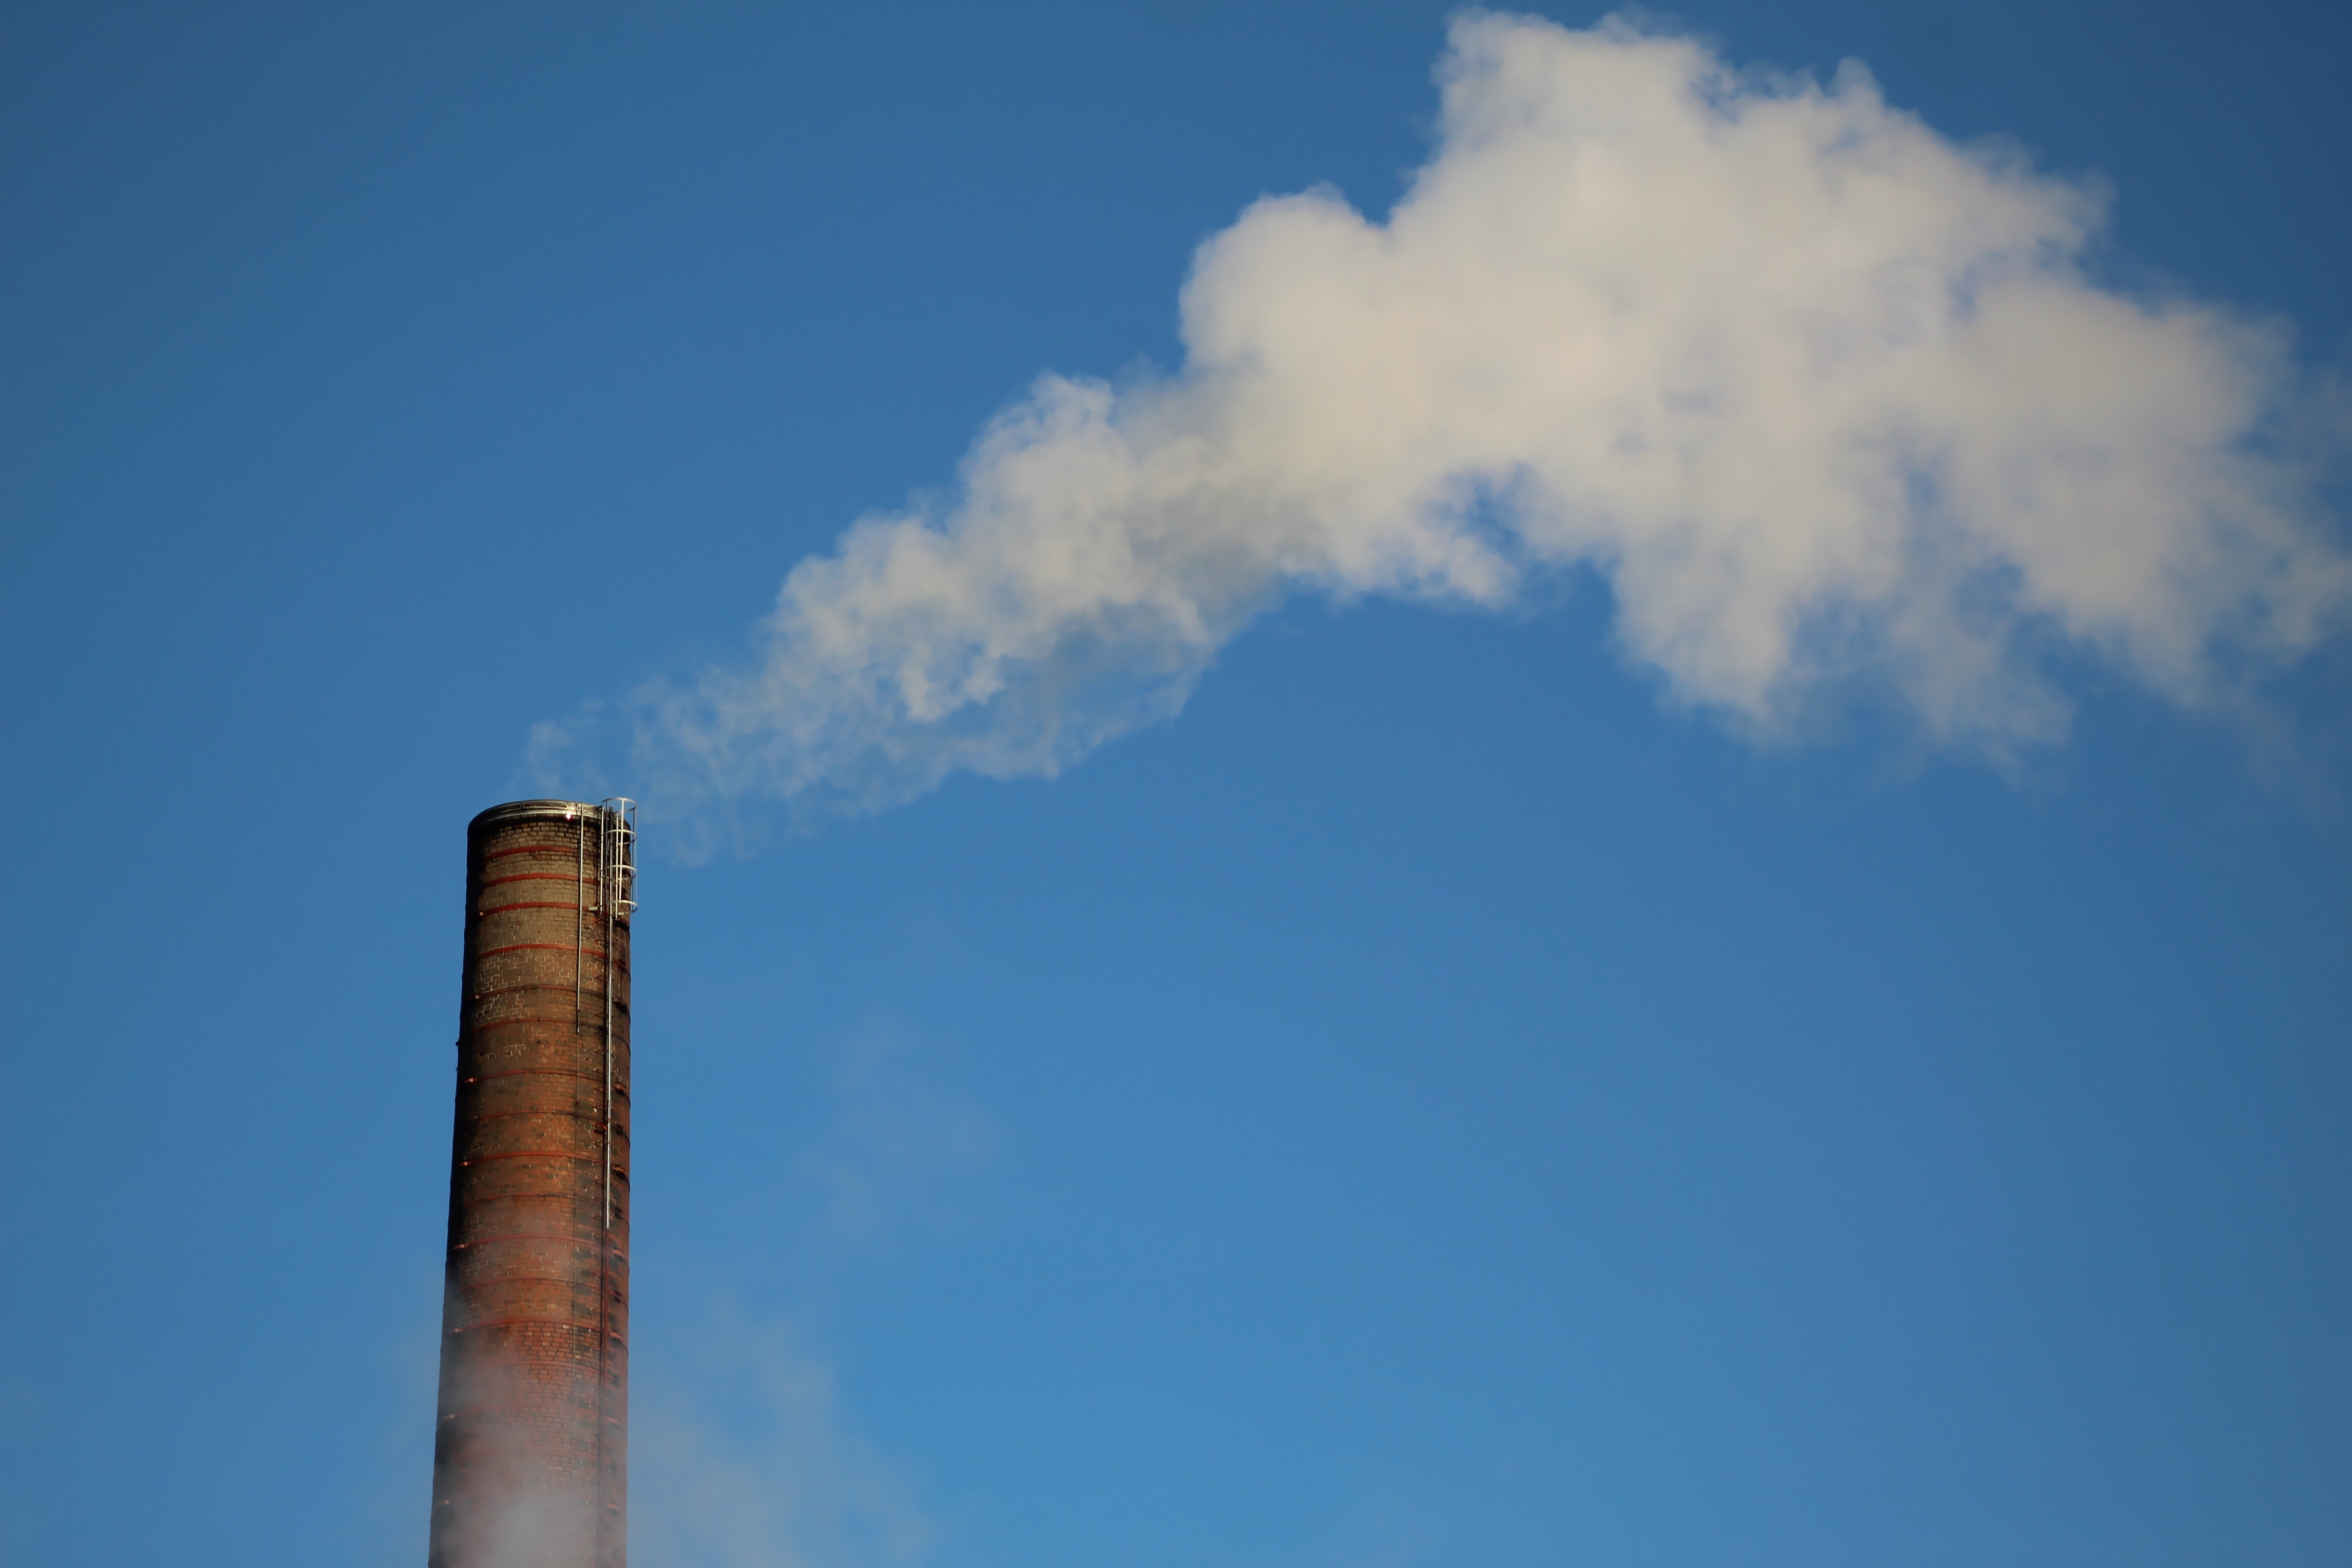 Manufacturing silo producing steam cloud